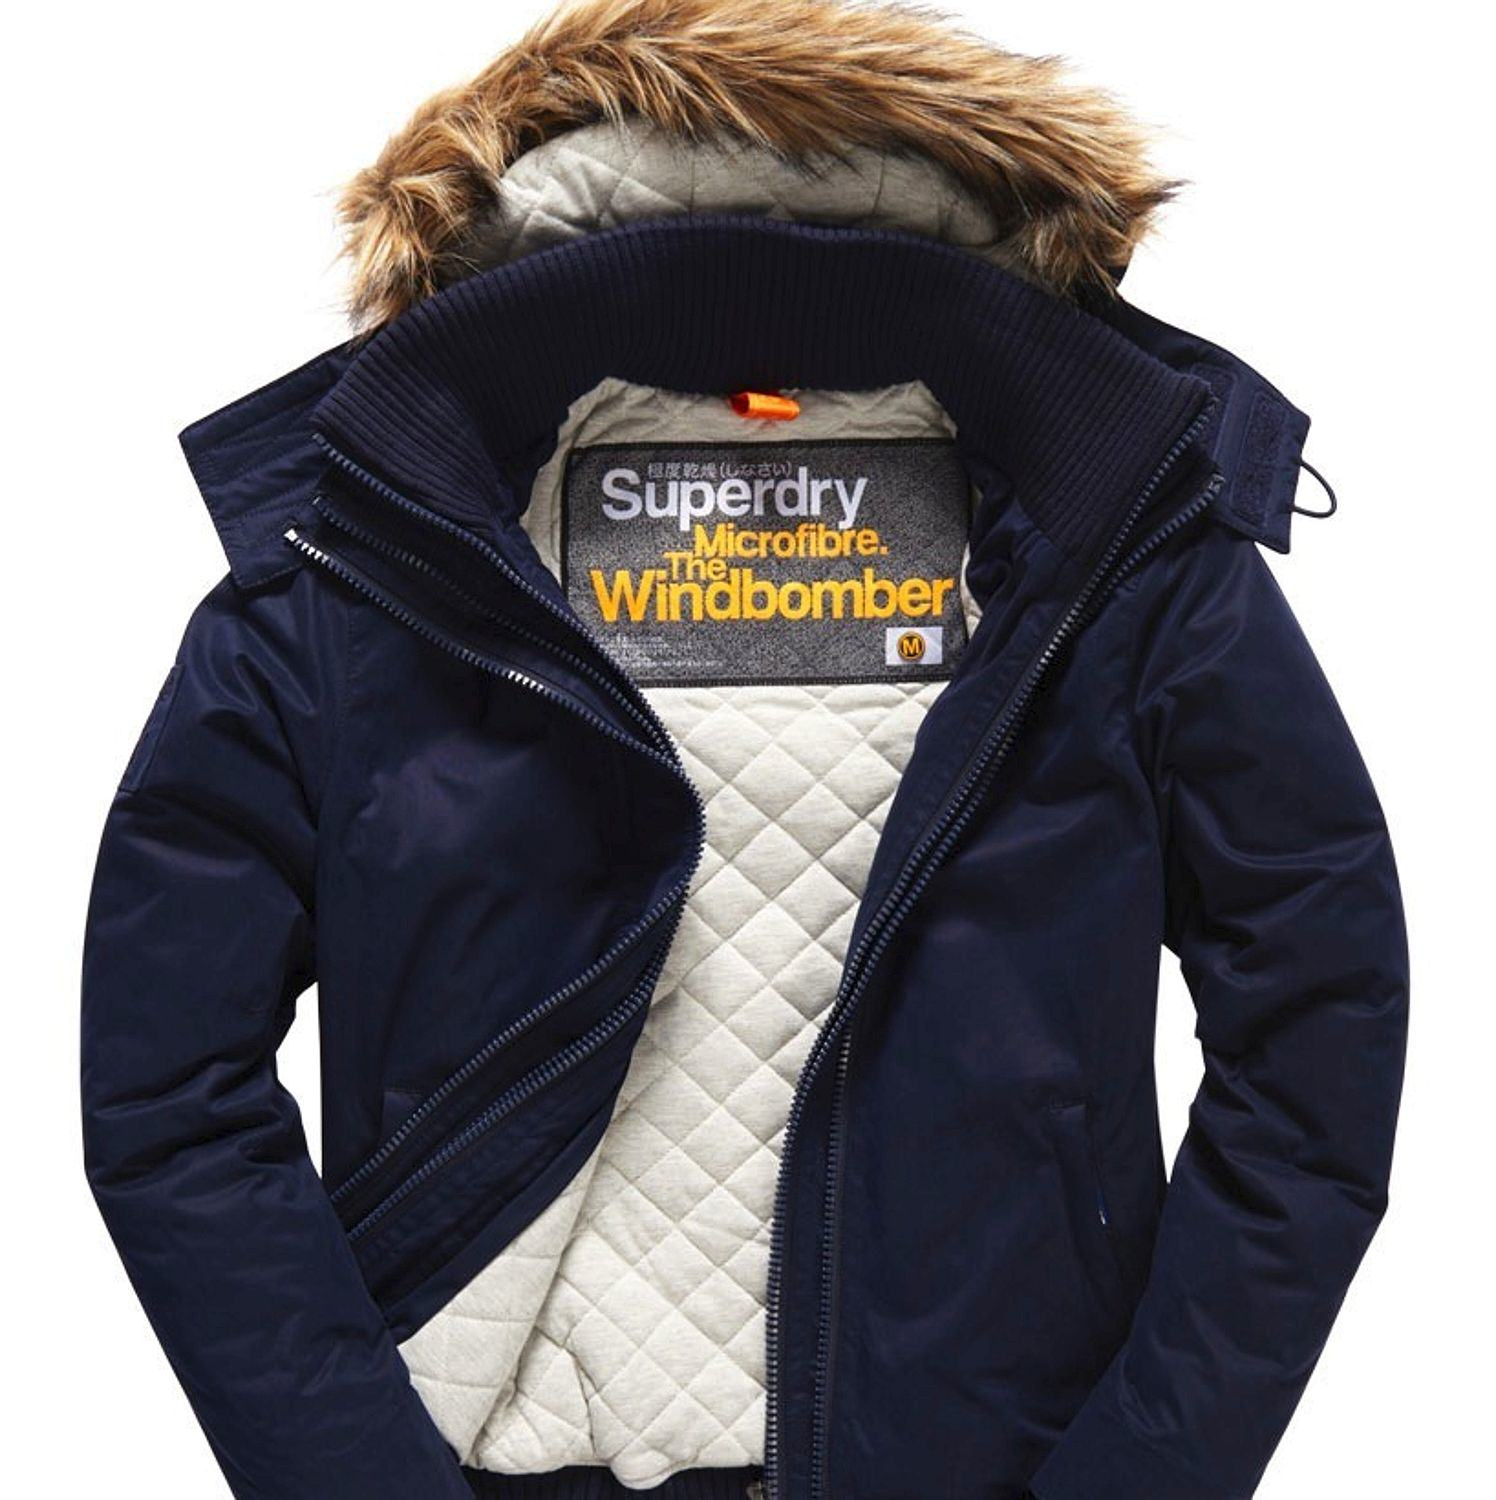 This Shocking Investigation Will Make You Never Want To Wear Superdry Again UNILAD superdry255292